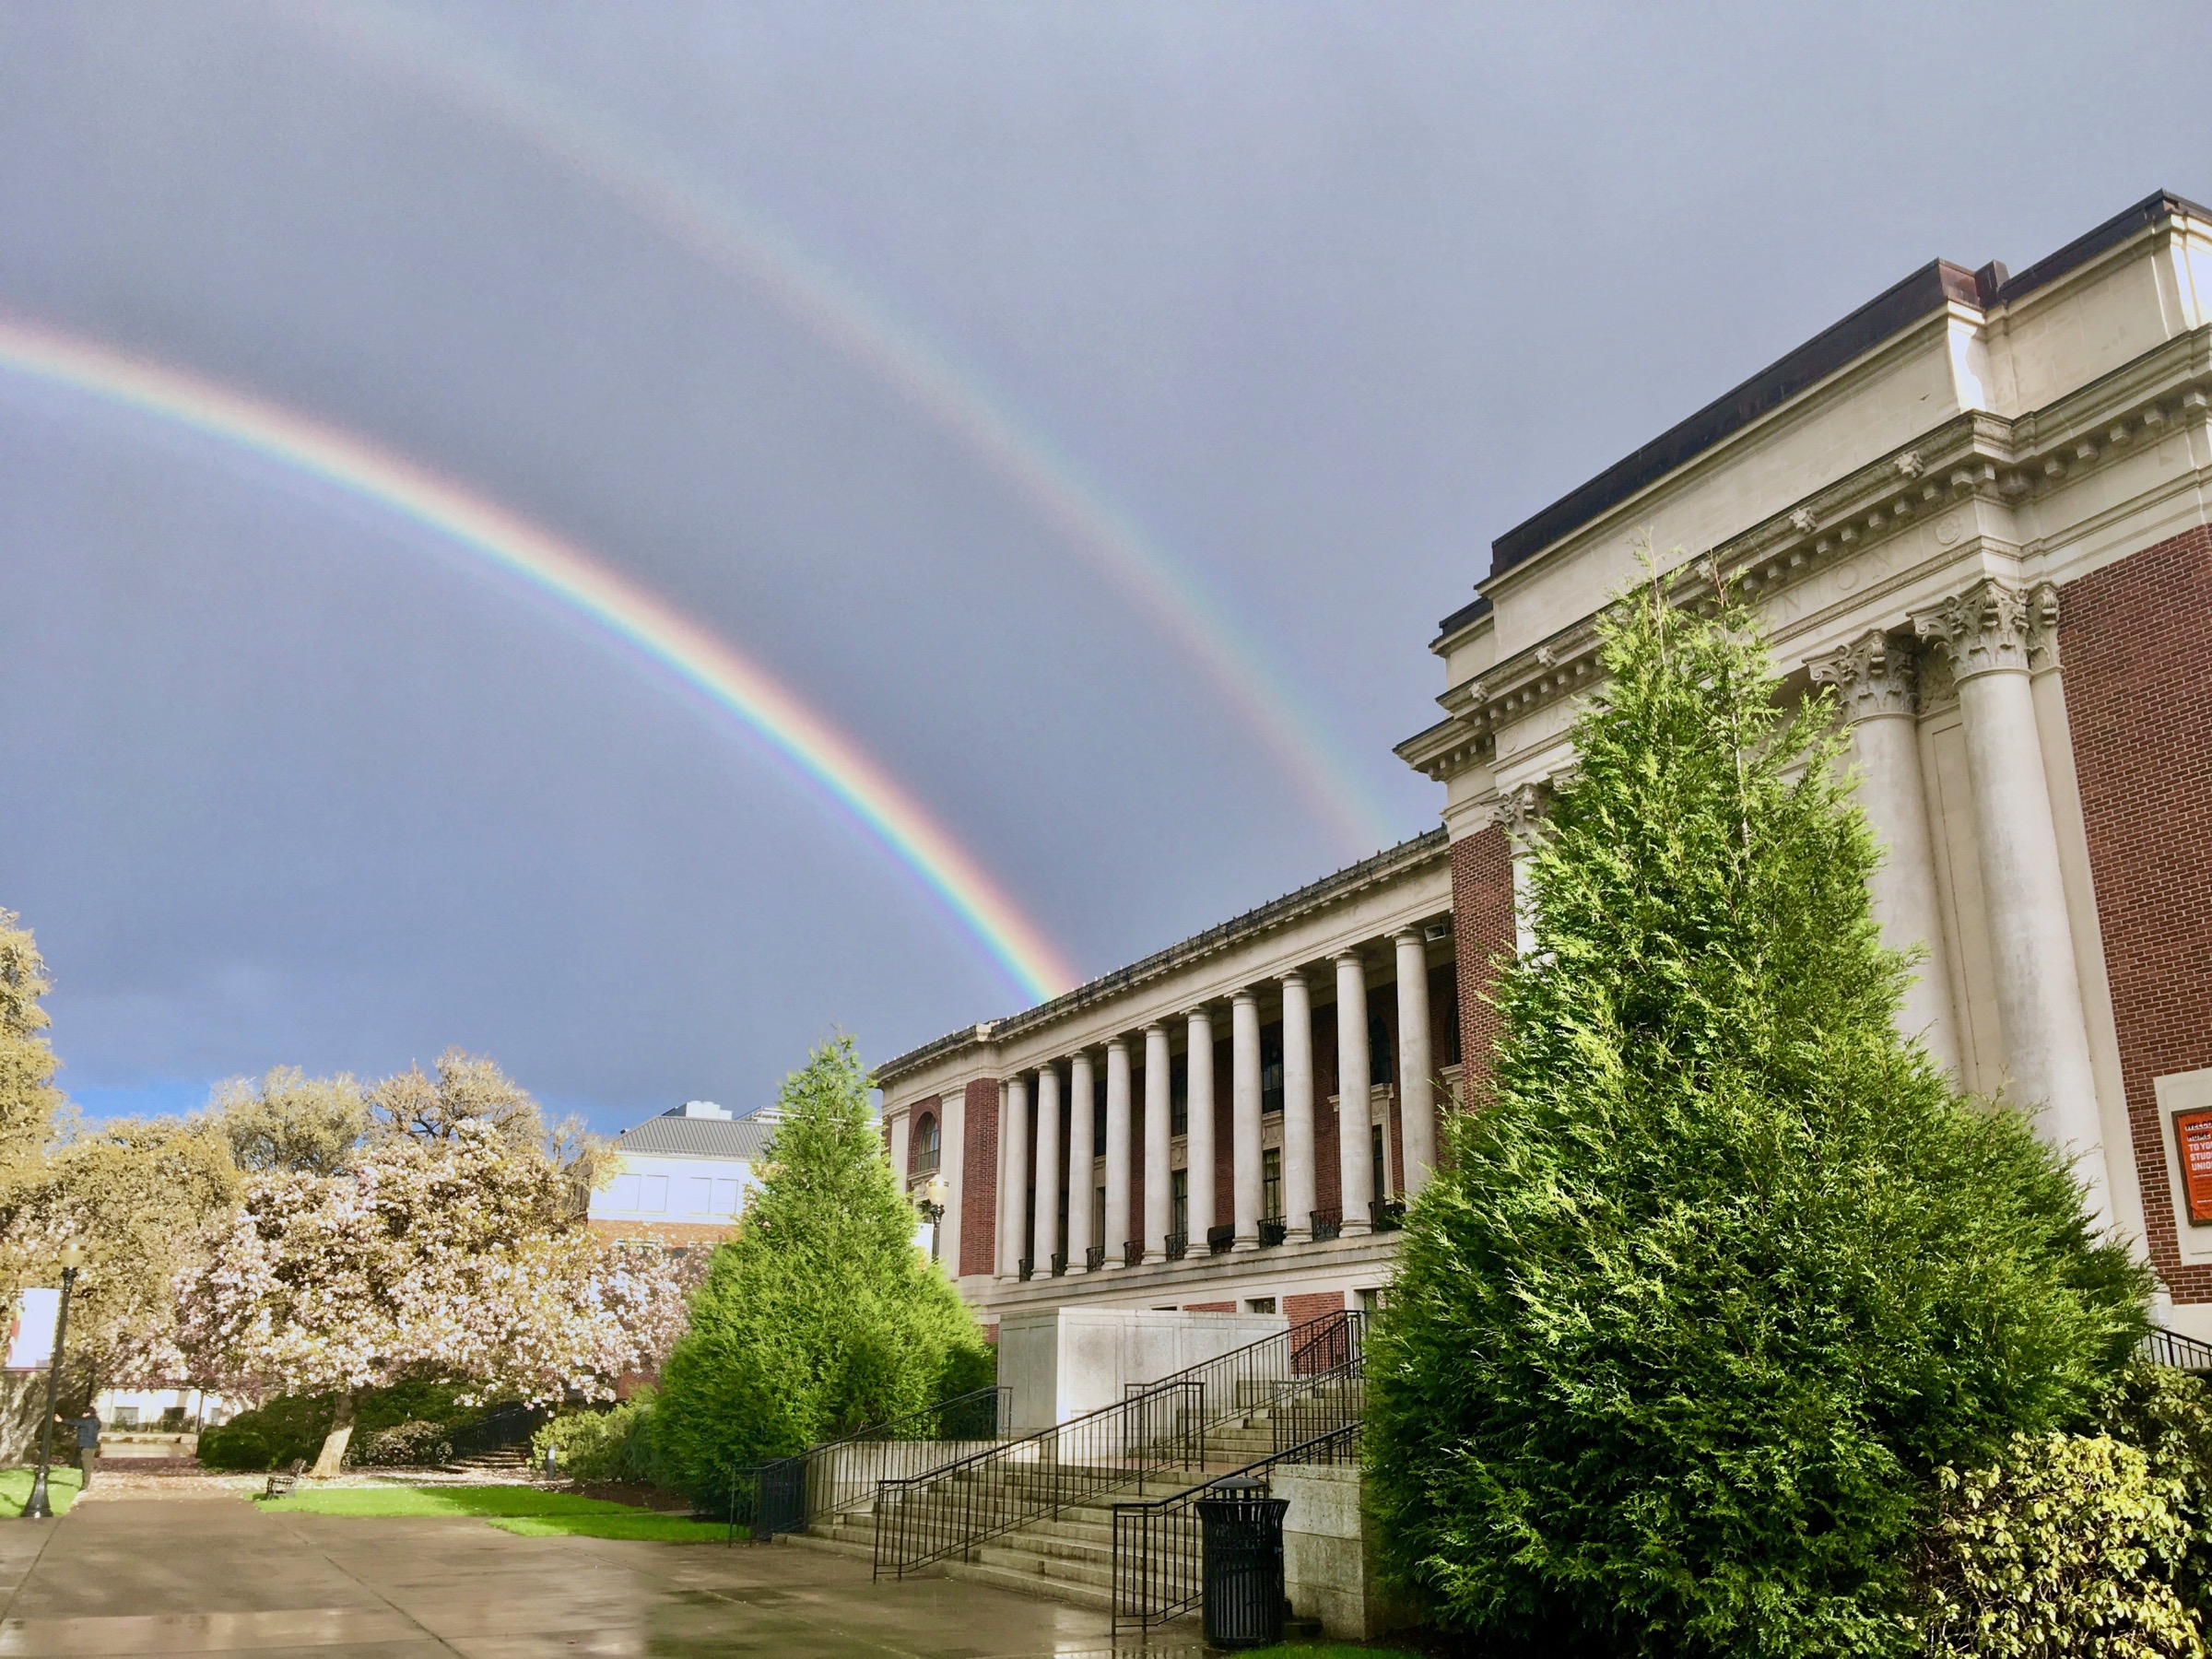 Double rainbow at Oregon State University MU